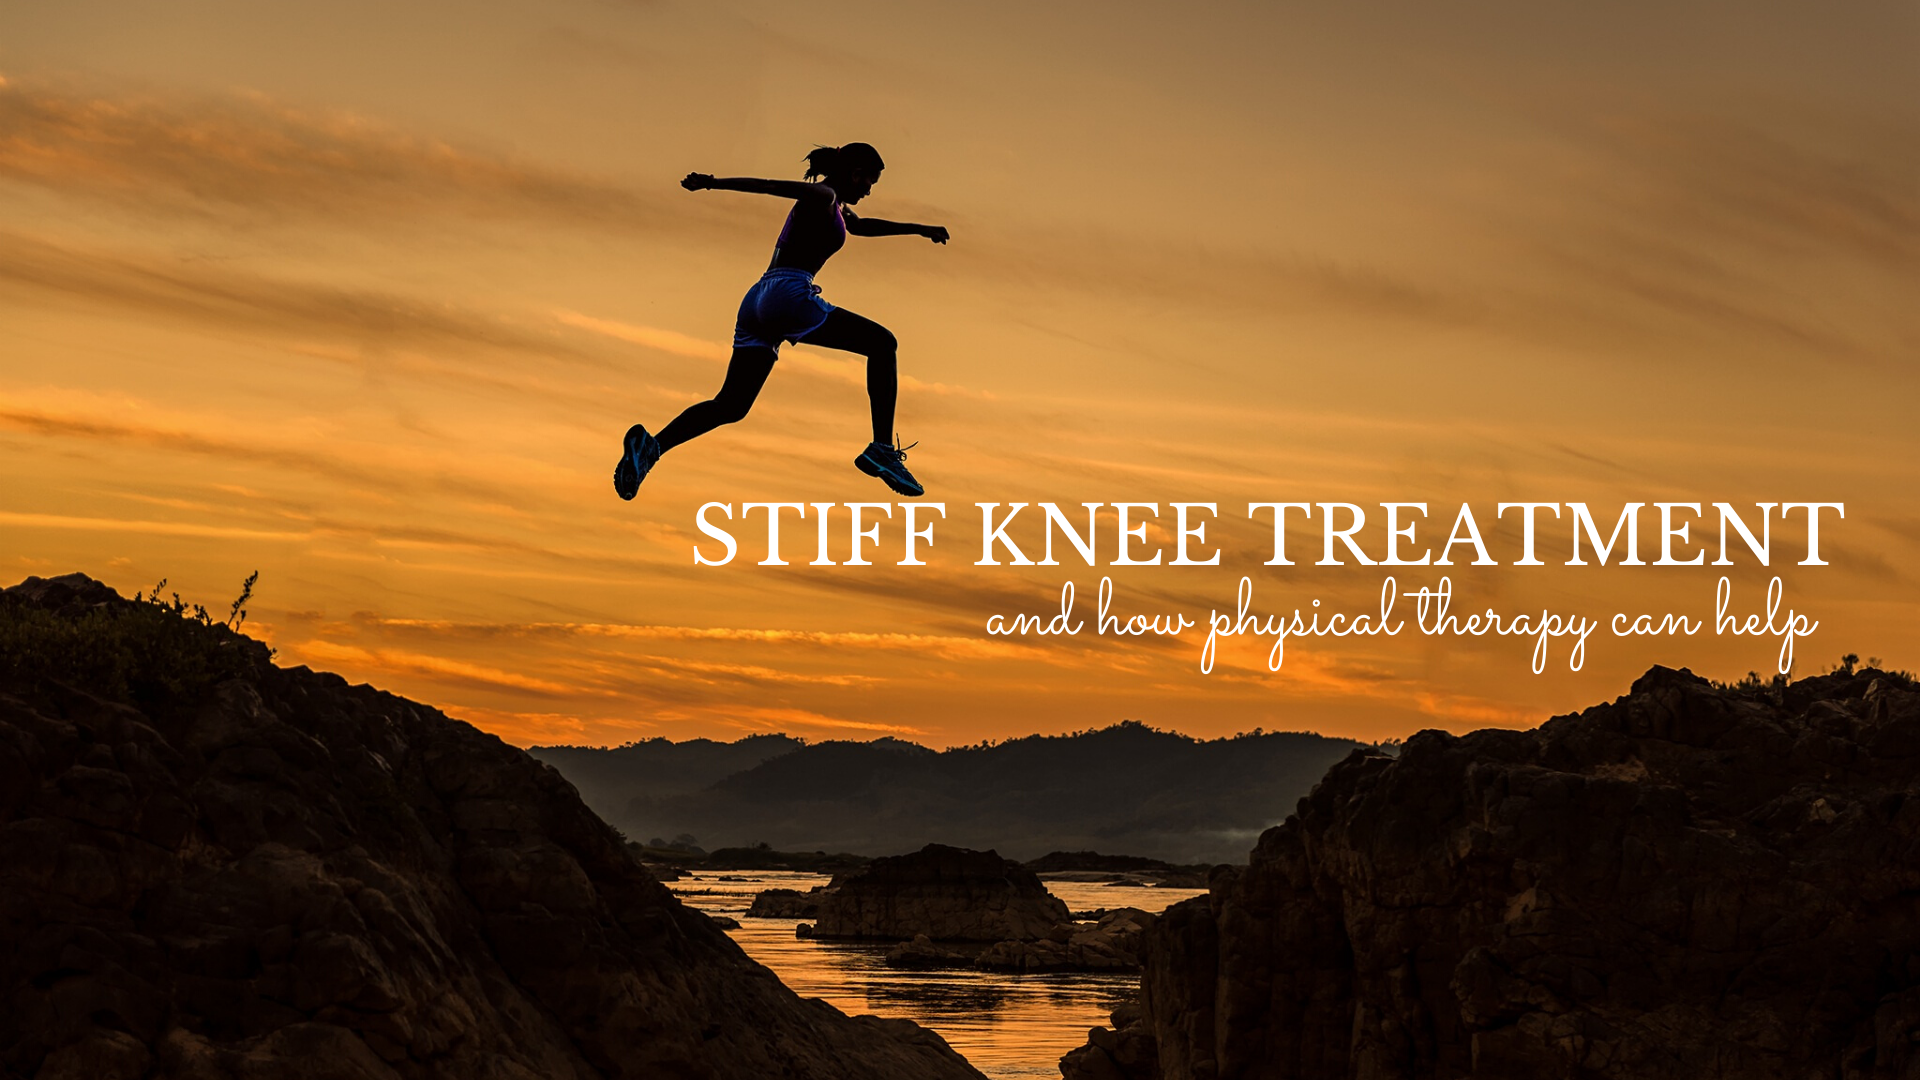 Stiff Knee Treatment - How Physical Therapy Can Help